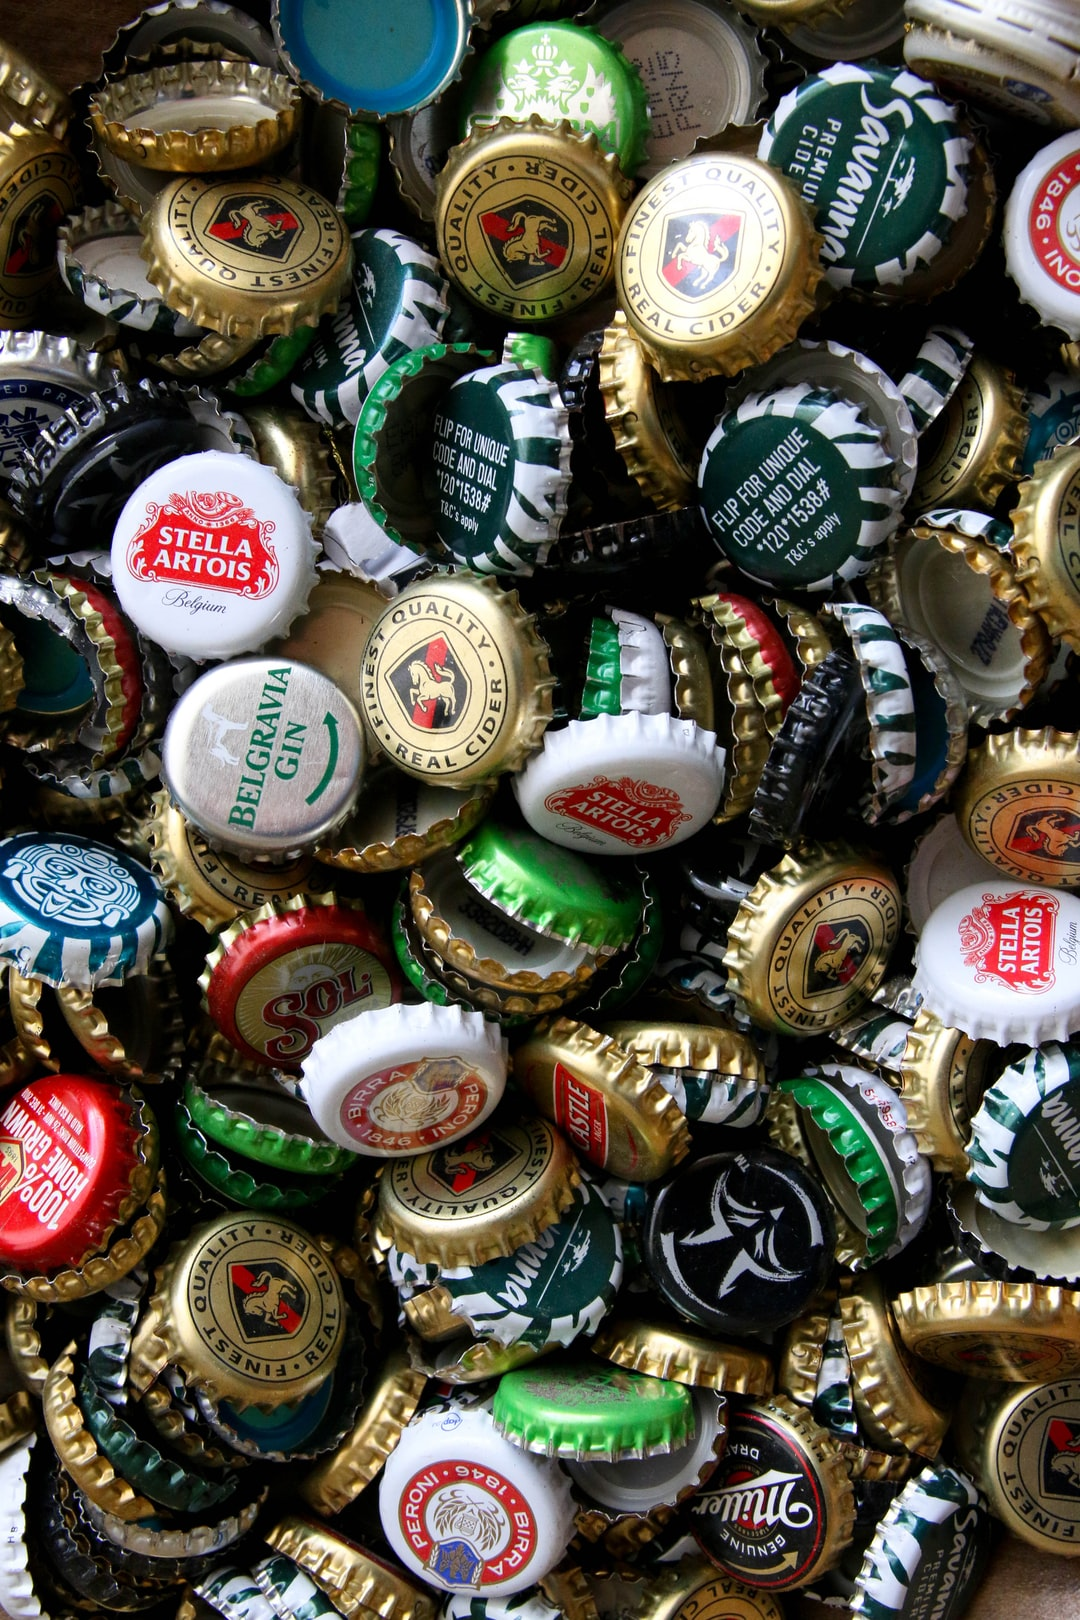 Many beer caps